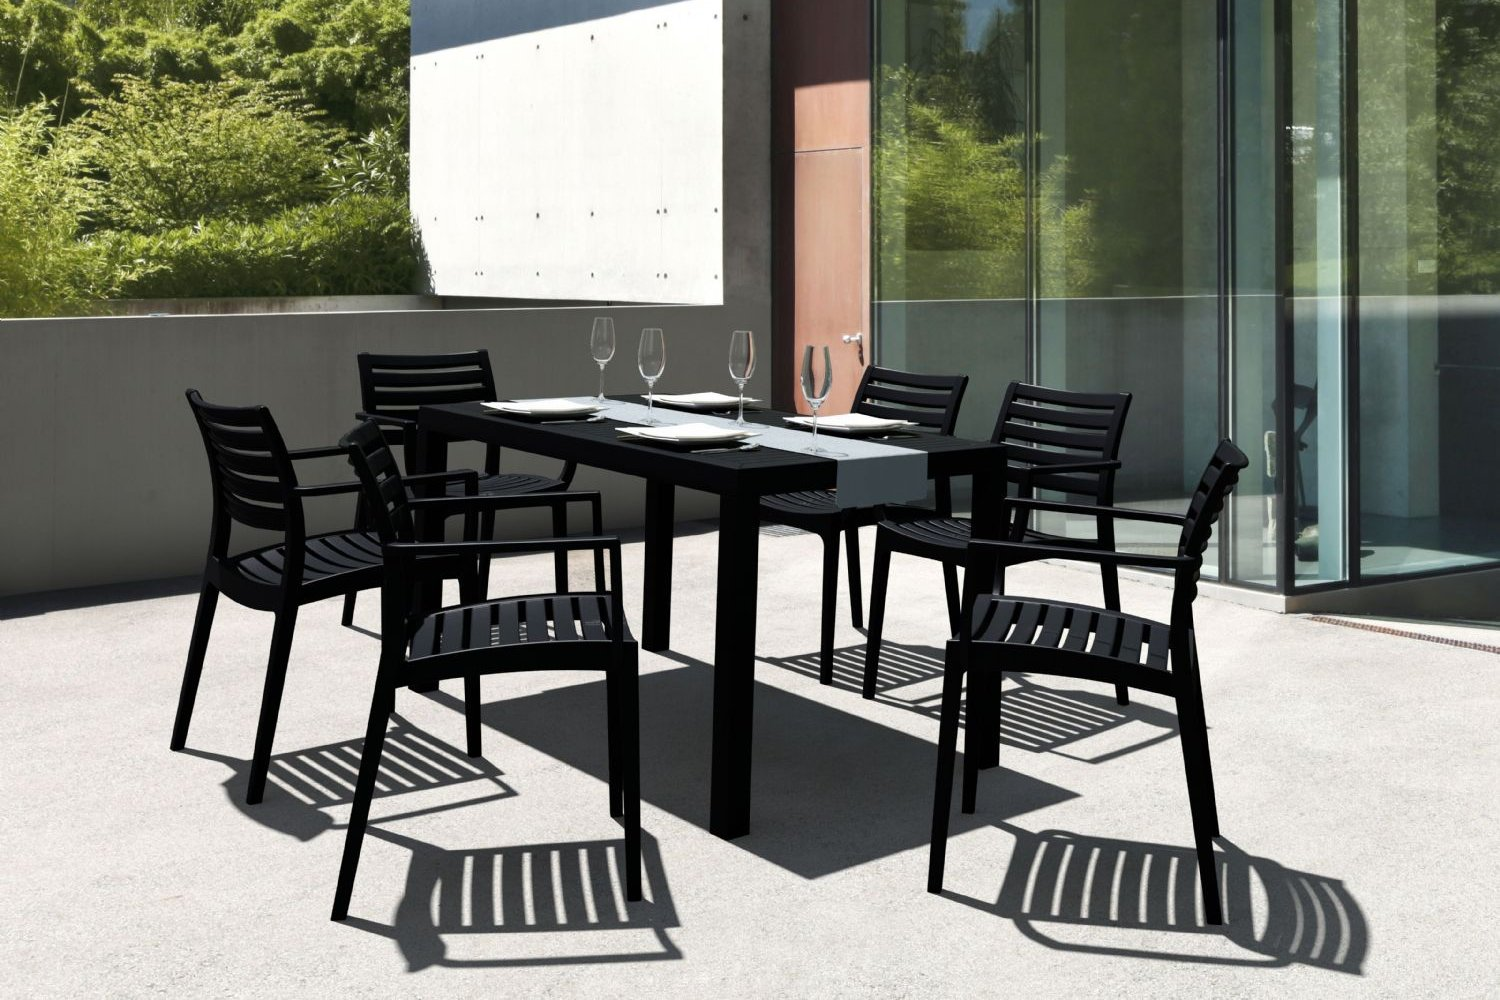 Artemis Resin Rectangle Outdoor Dining Set 7 Piece with Arm Chairs White ISP1862S-WHI - 1